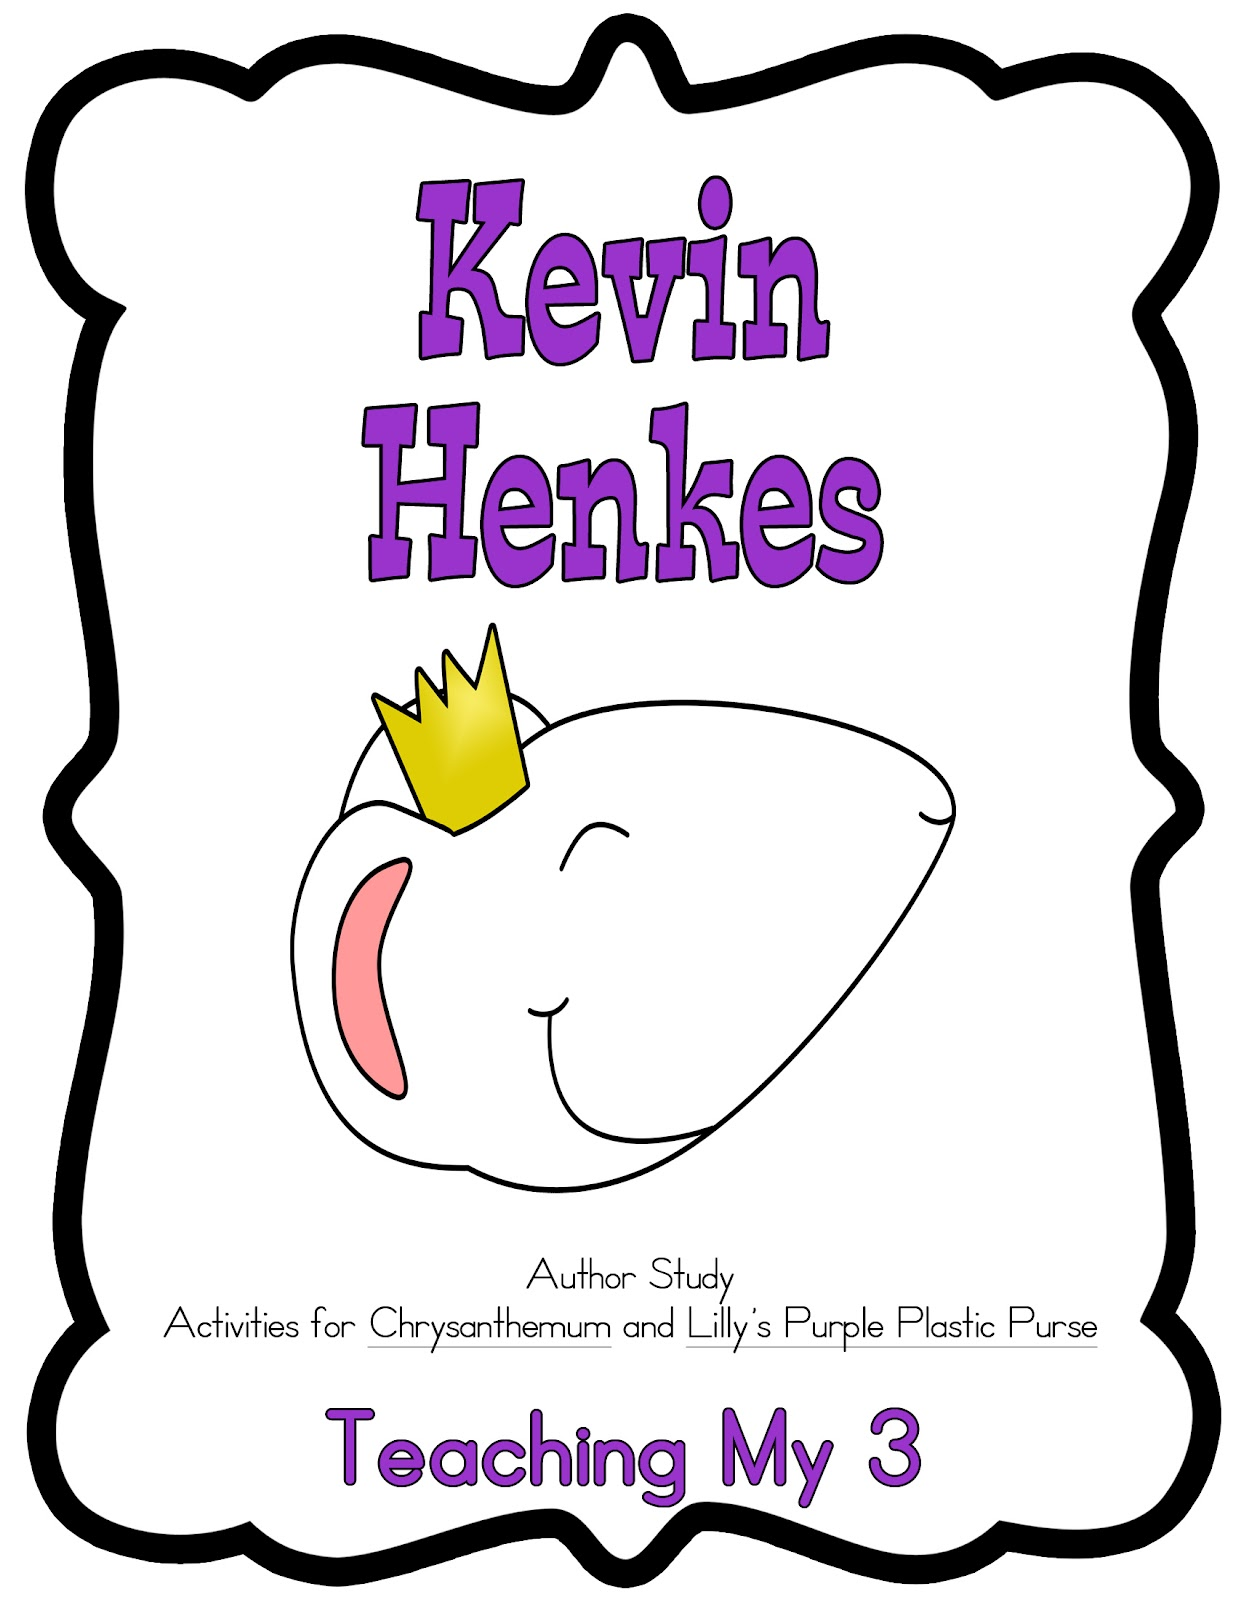 kevin henkes chrysanthemum coloring pages - photo#23